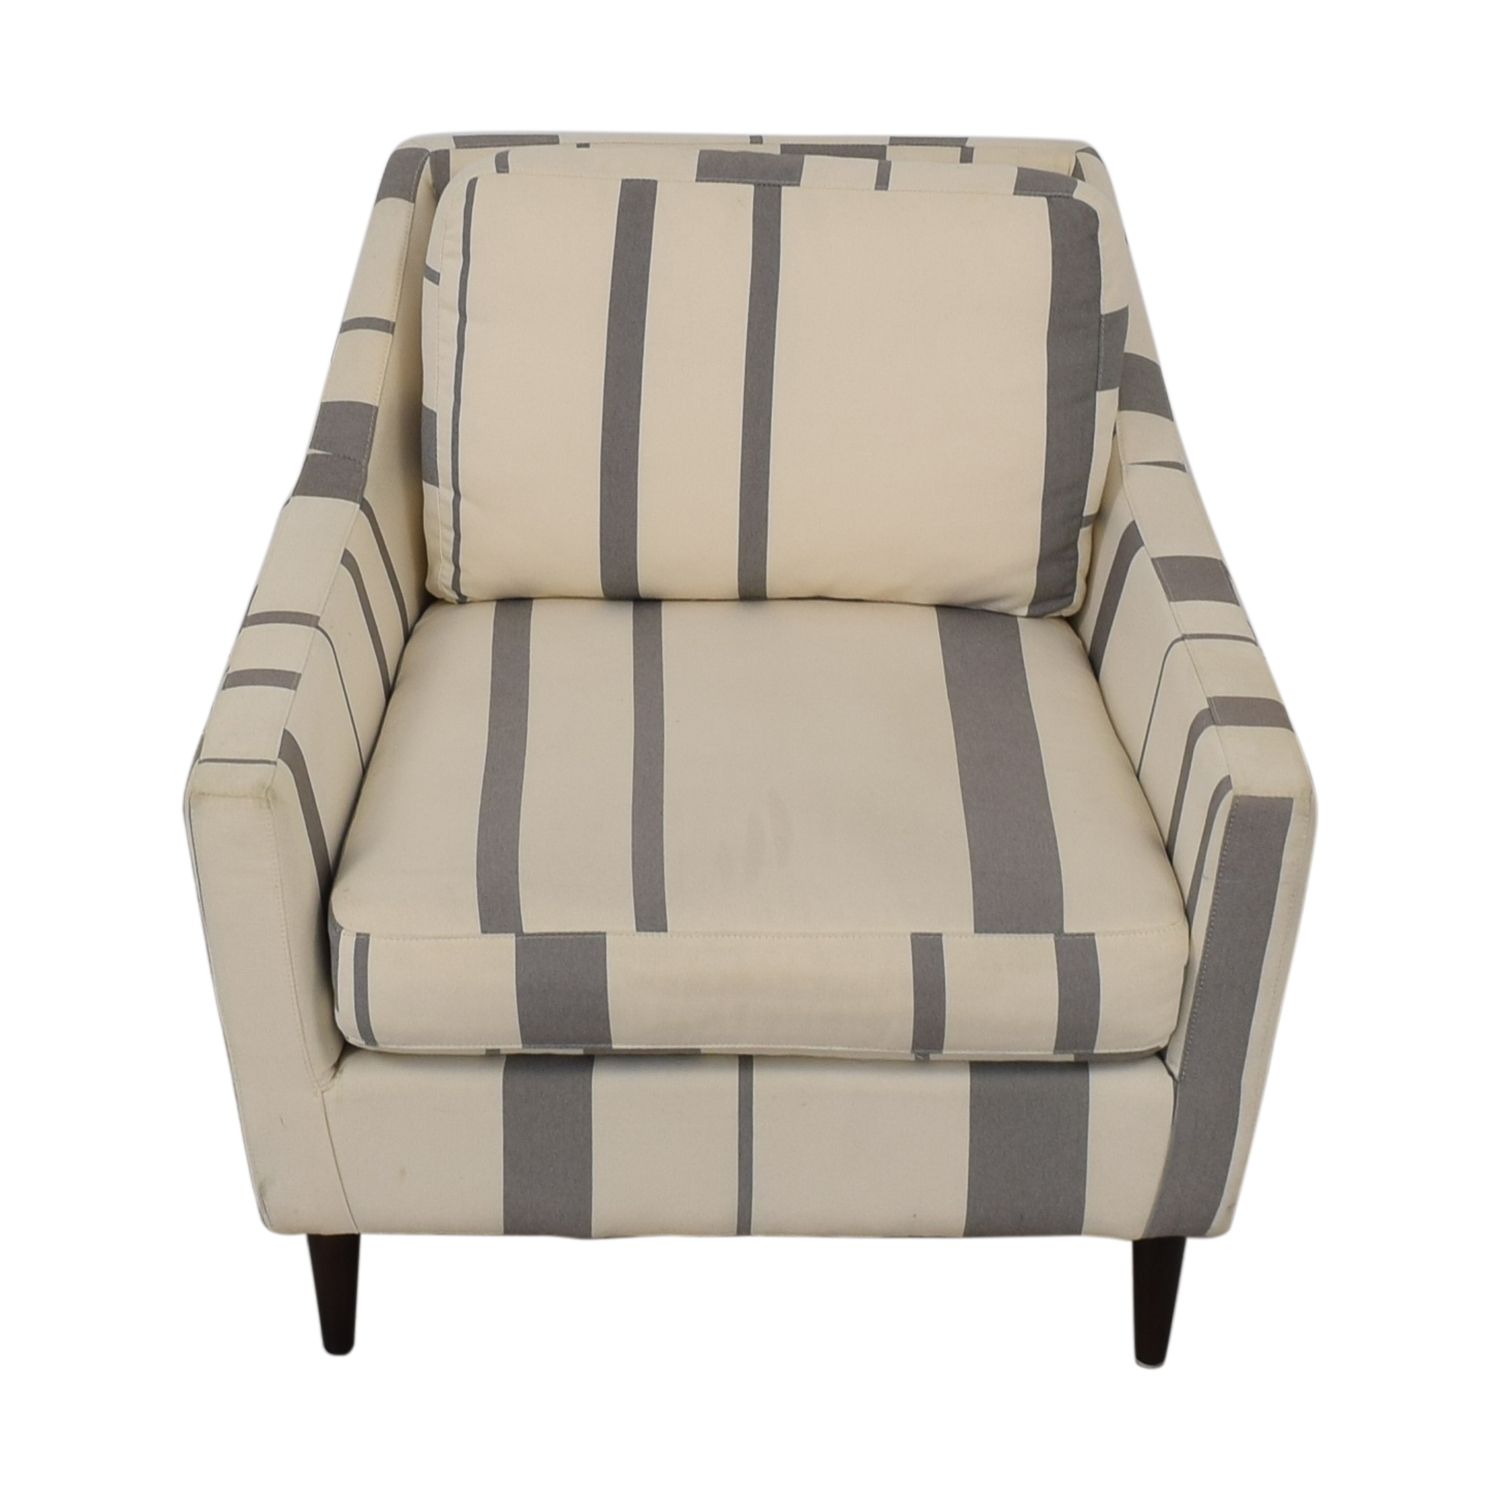 West Elm West Elm Everett Grey and White Striped Accent Chair nj